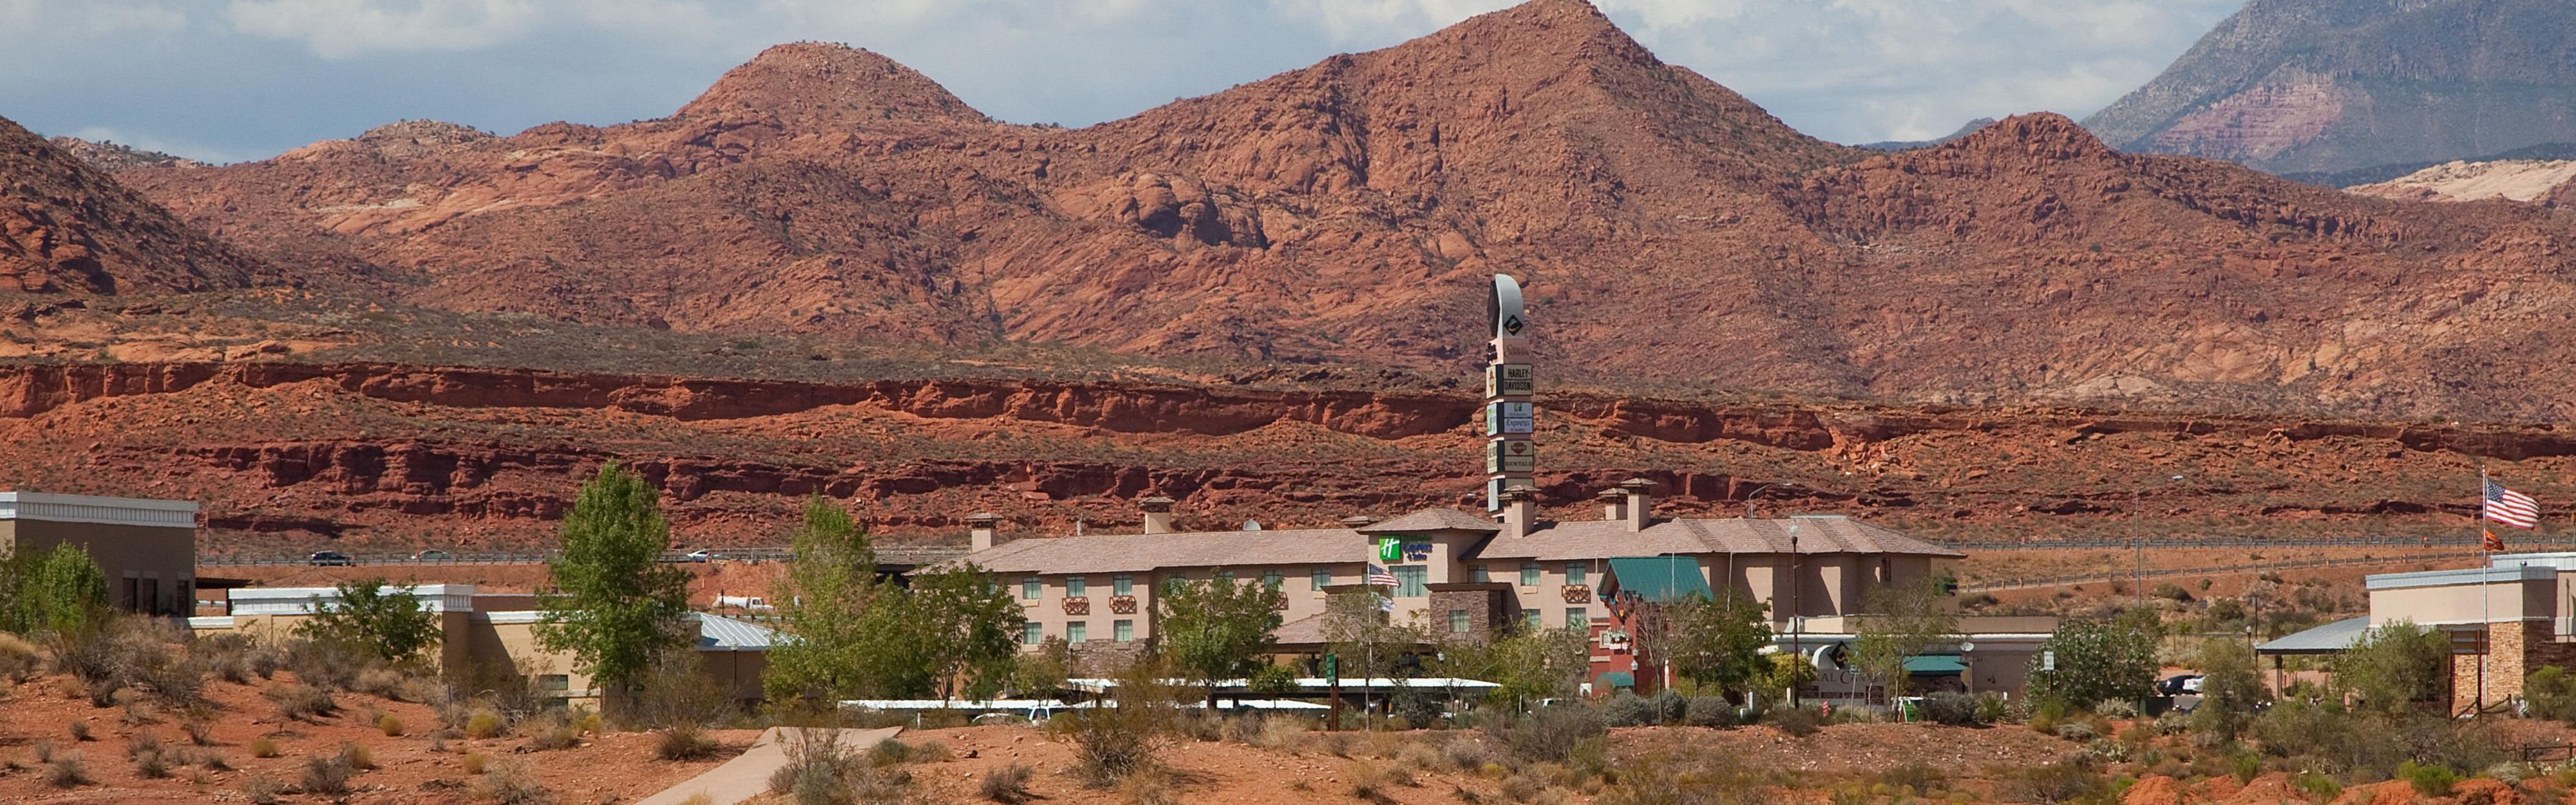 Holiday Inn Express & Suites St. George North - Zion image 0